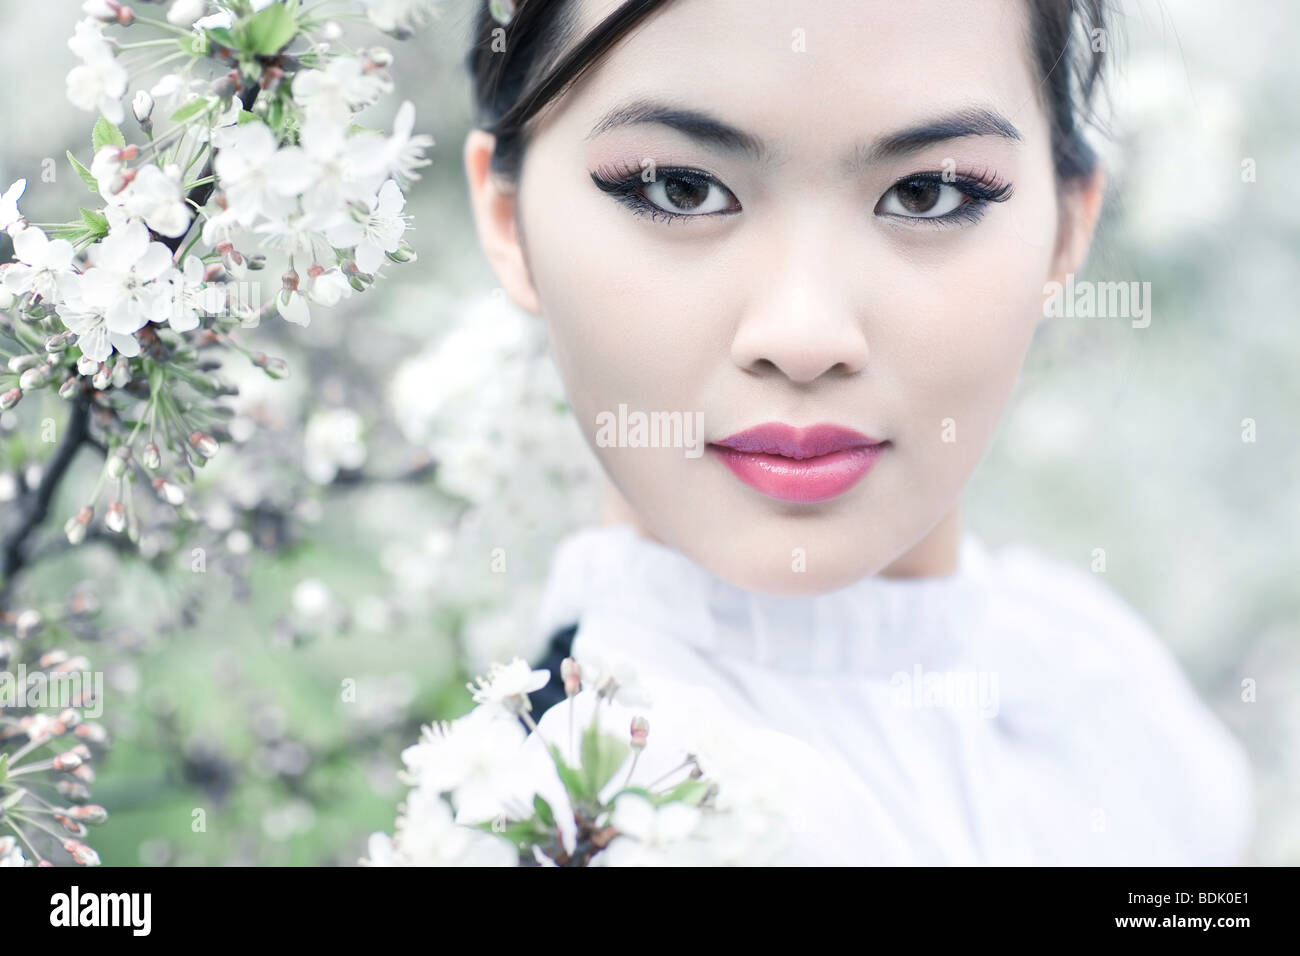 Young woman with cherry flowers. Shallow dof effect. - Stock Image